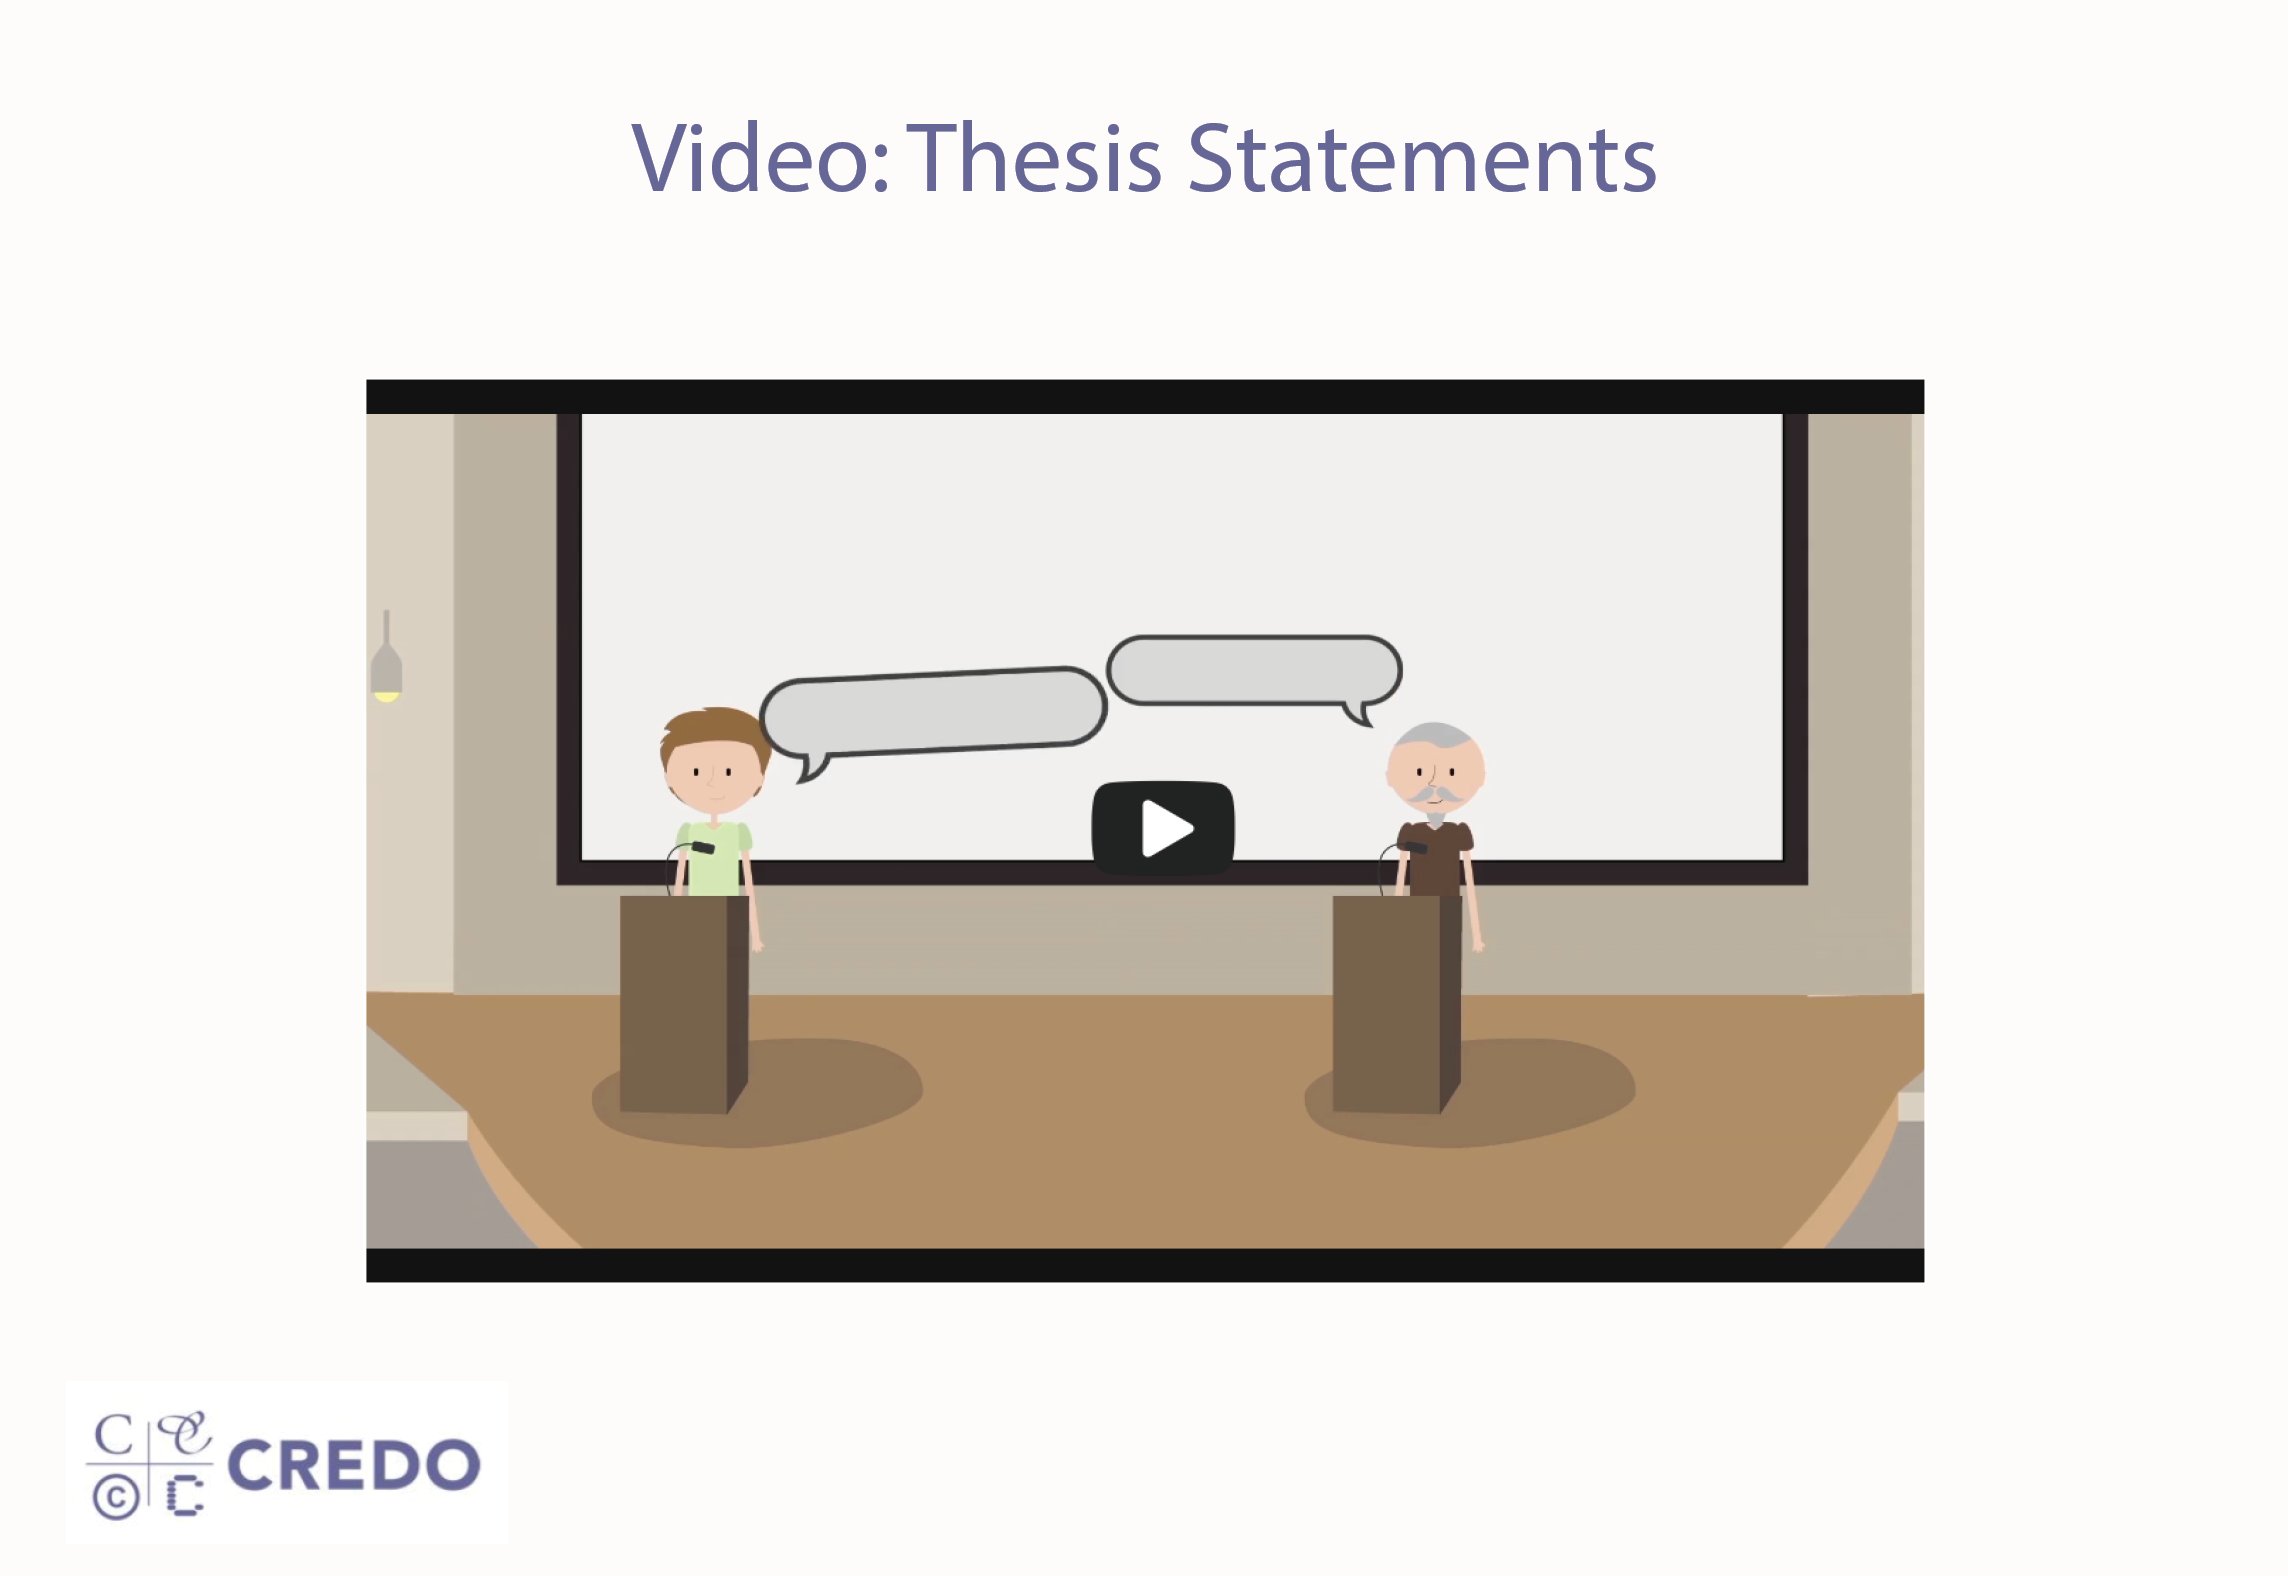 Video: Thesis Statements